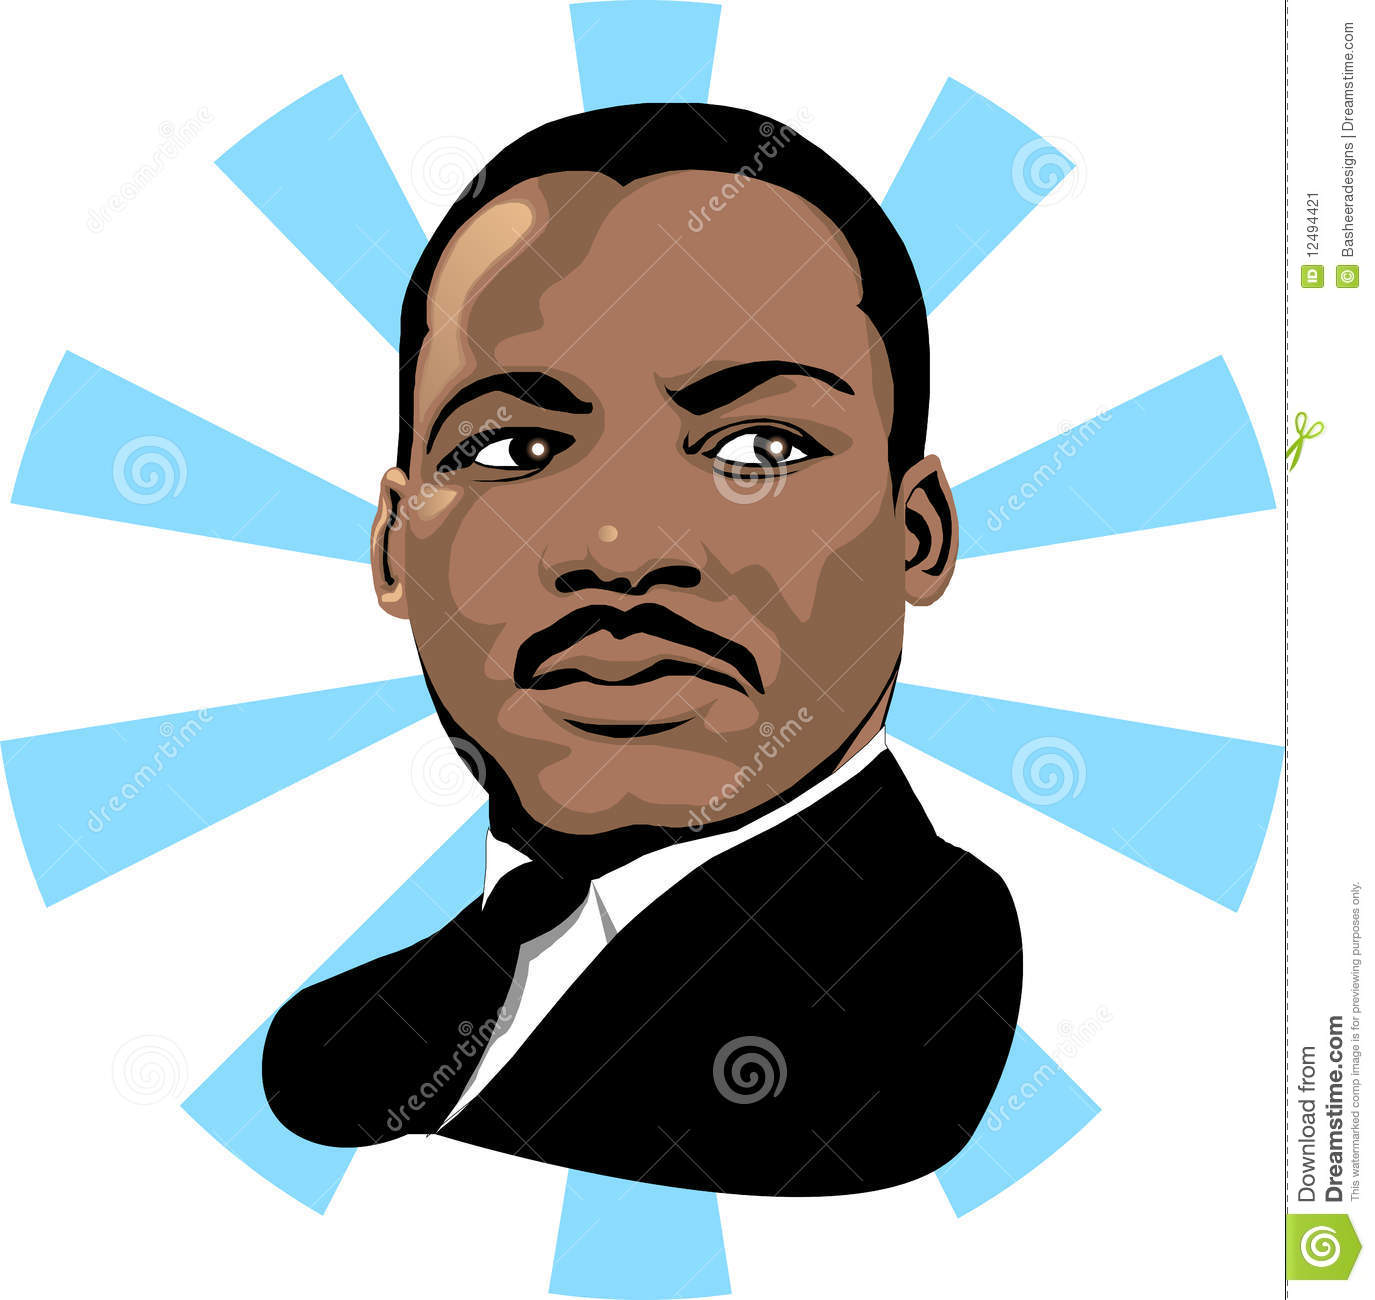 king clipart at getdrawings com free for personal use king clipart rh getdrawings com martin luther king jr quotes clipart martin luther king jr clip art images